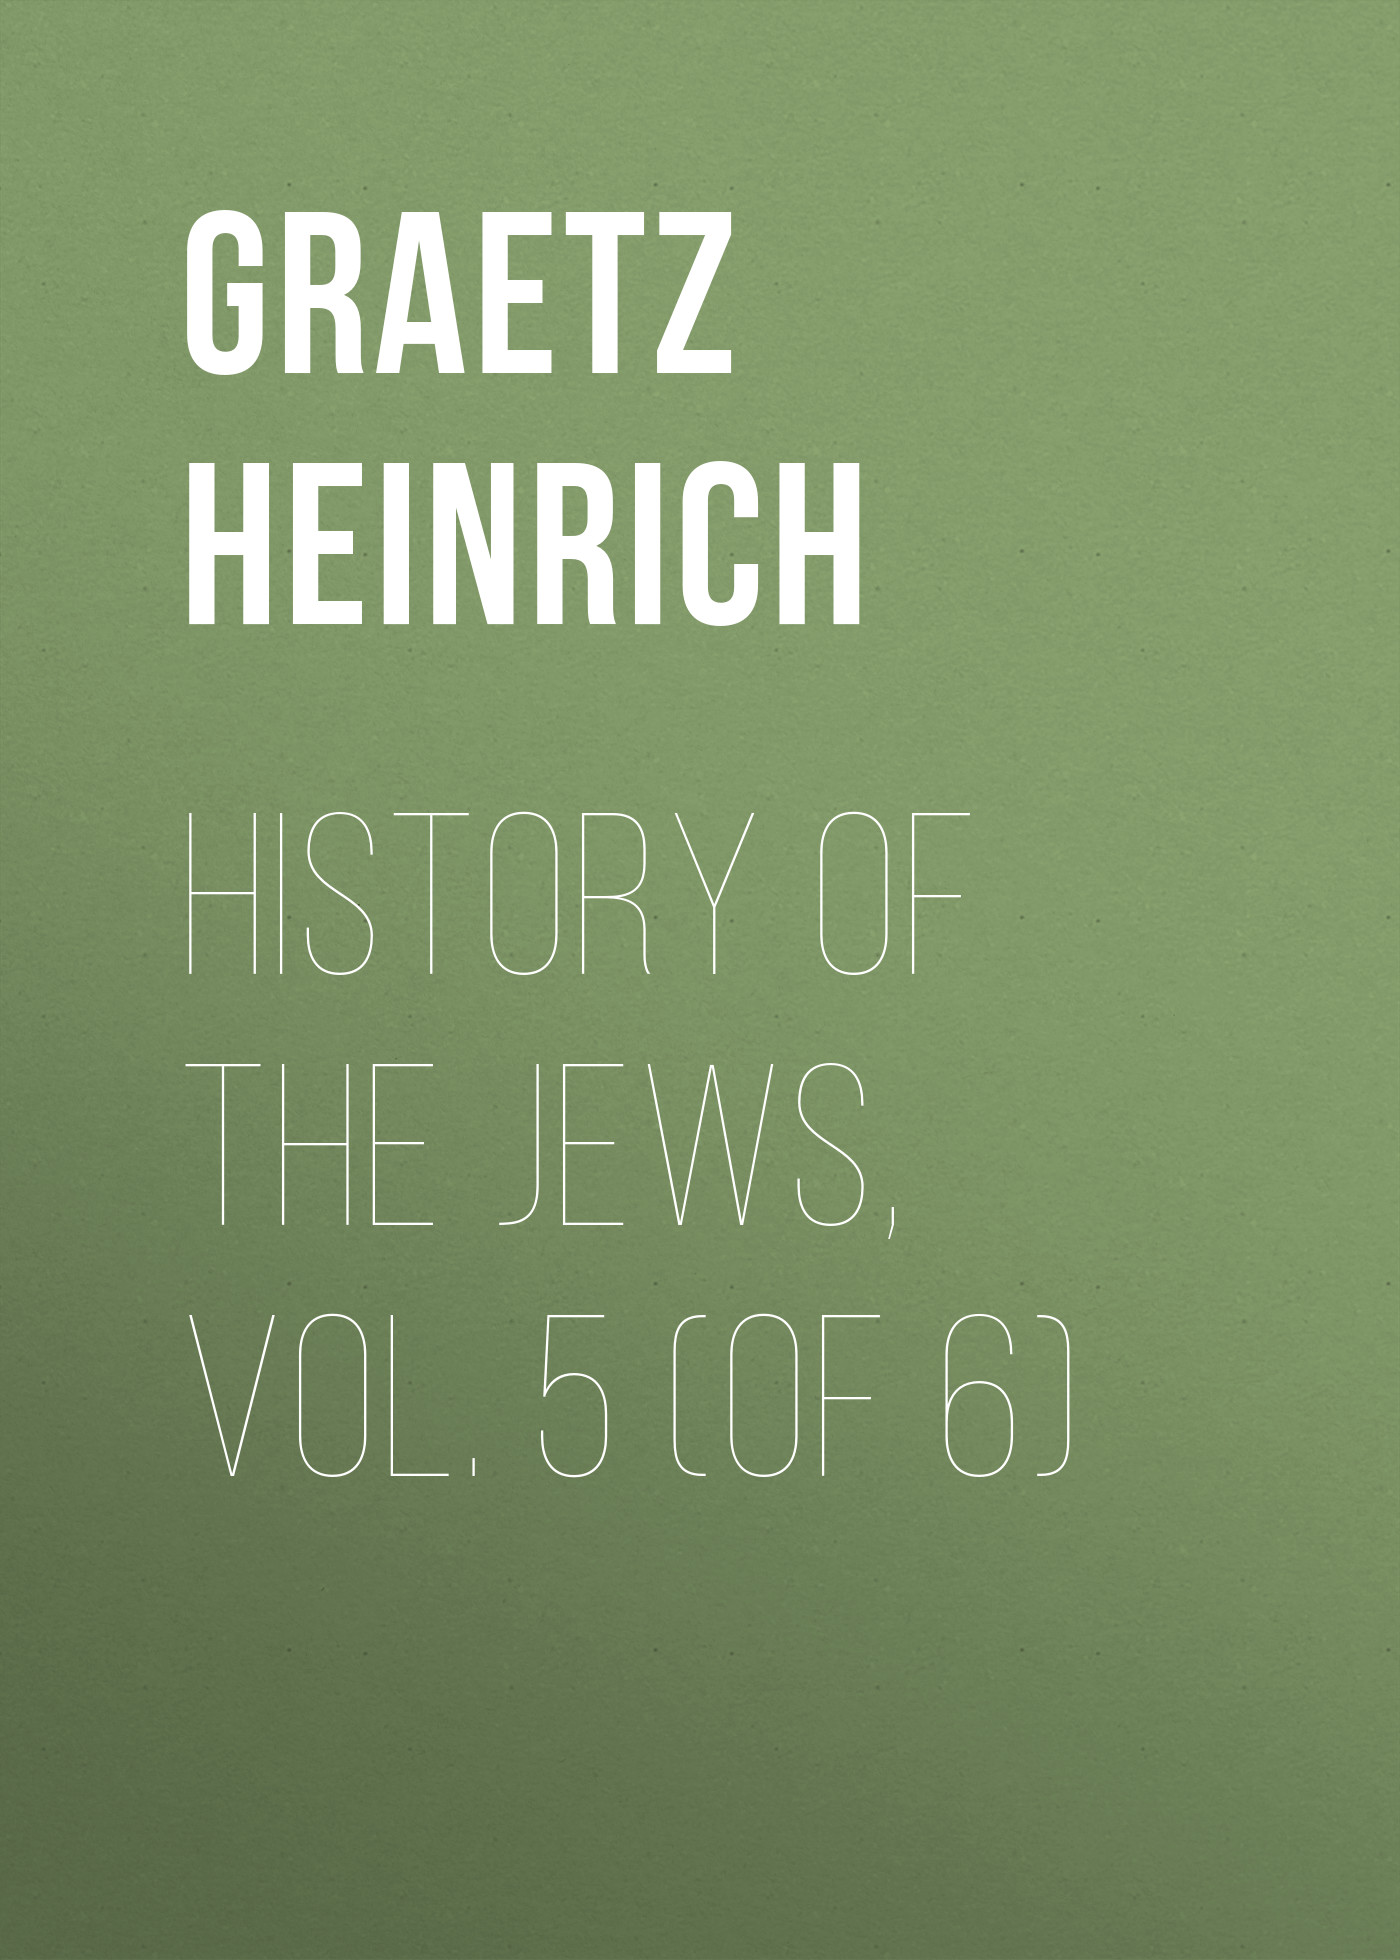 Graetz Heinrich History of the Jews, Vol. 5 (of 6) duncker max the history of antiquity vol 4 of 6